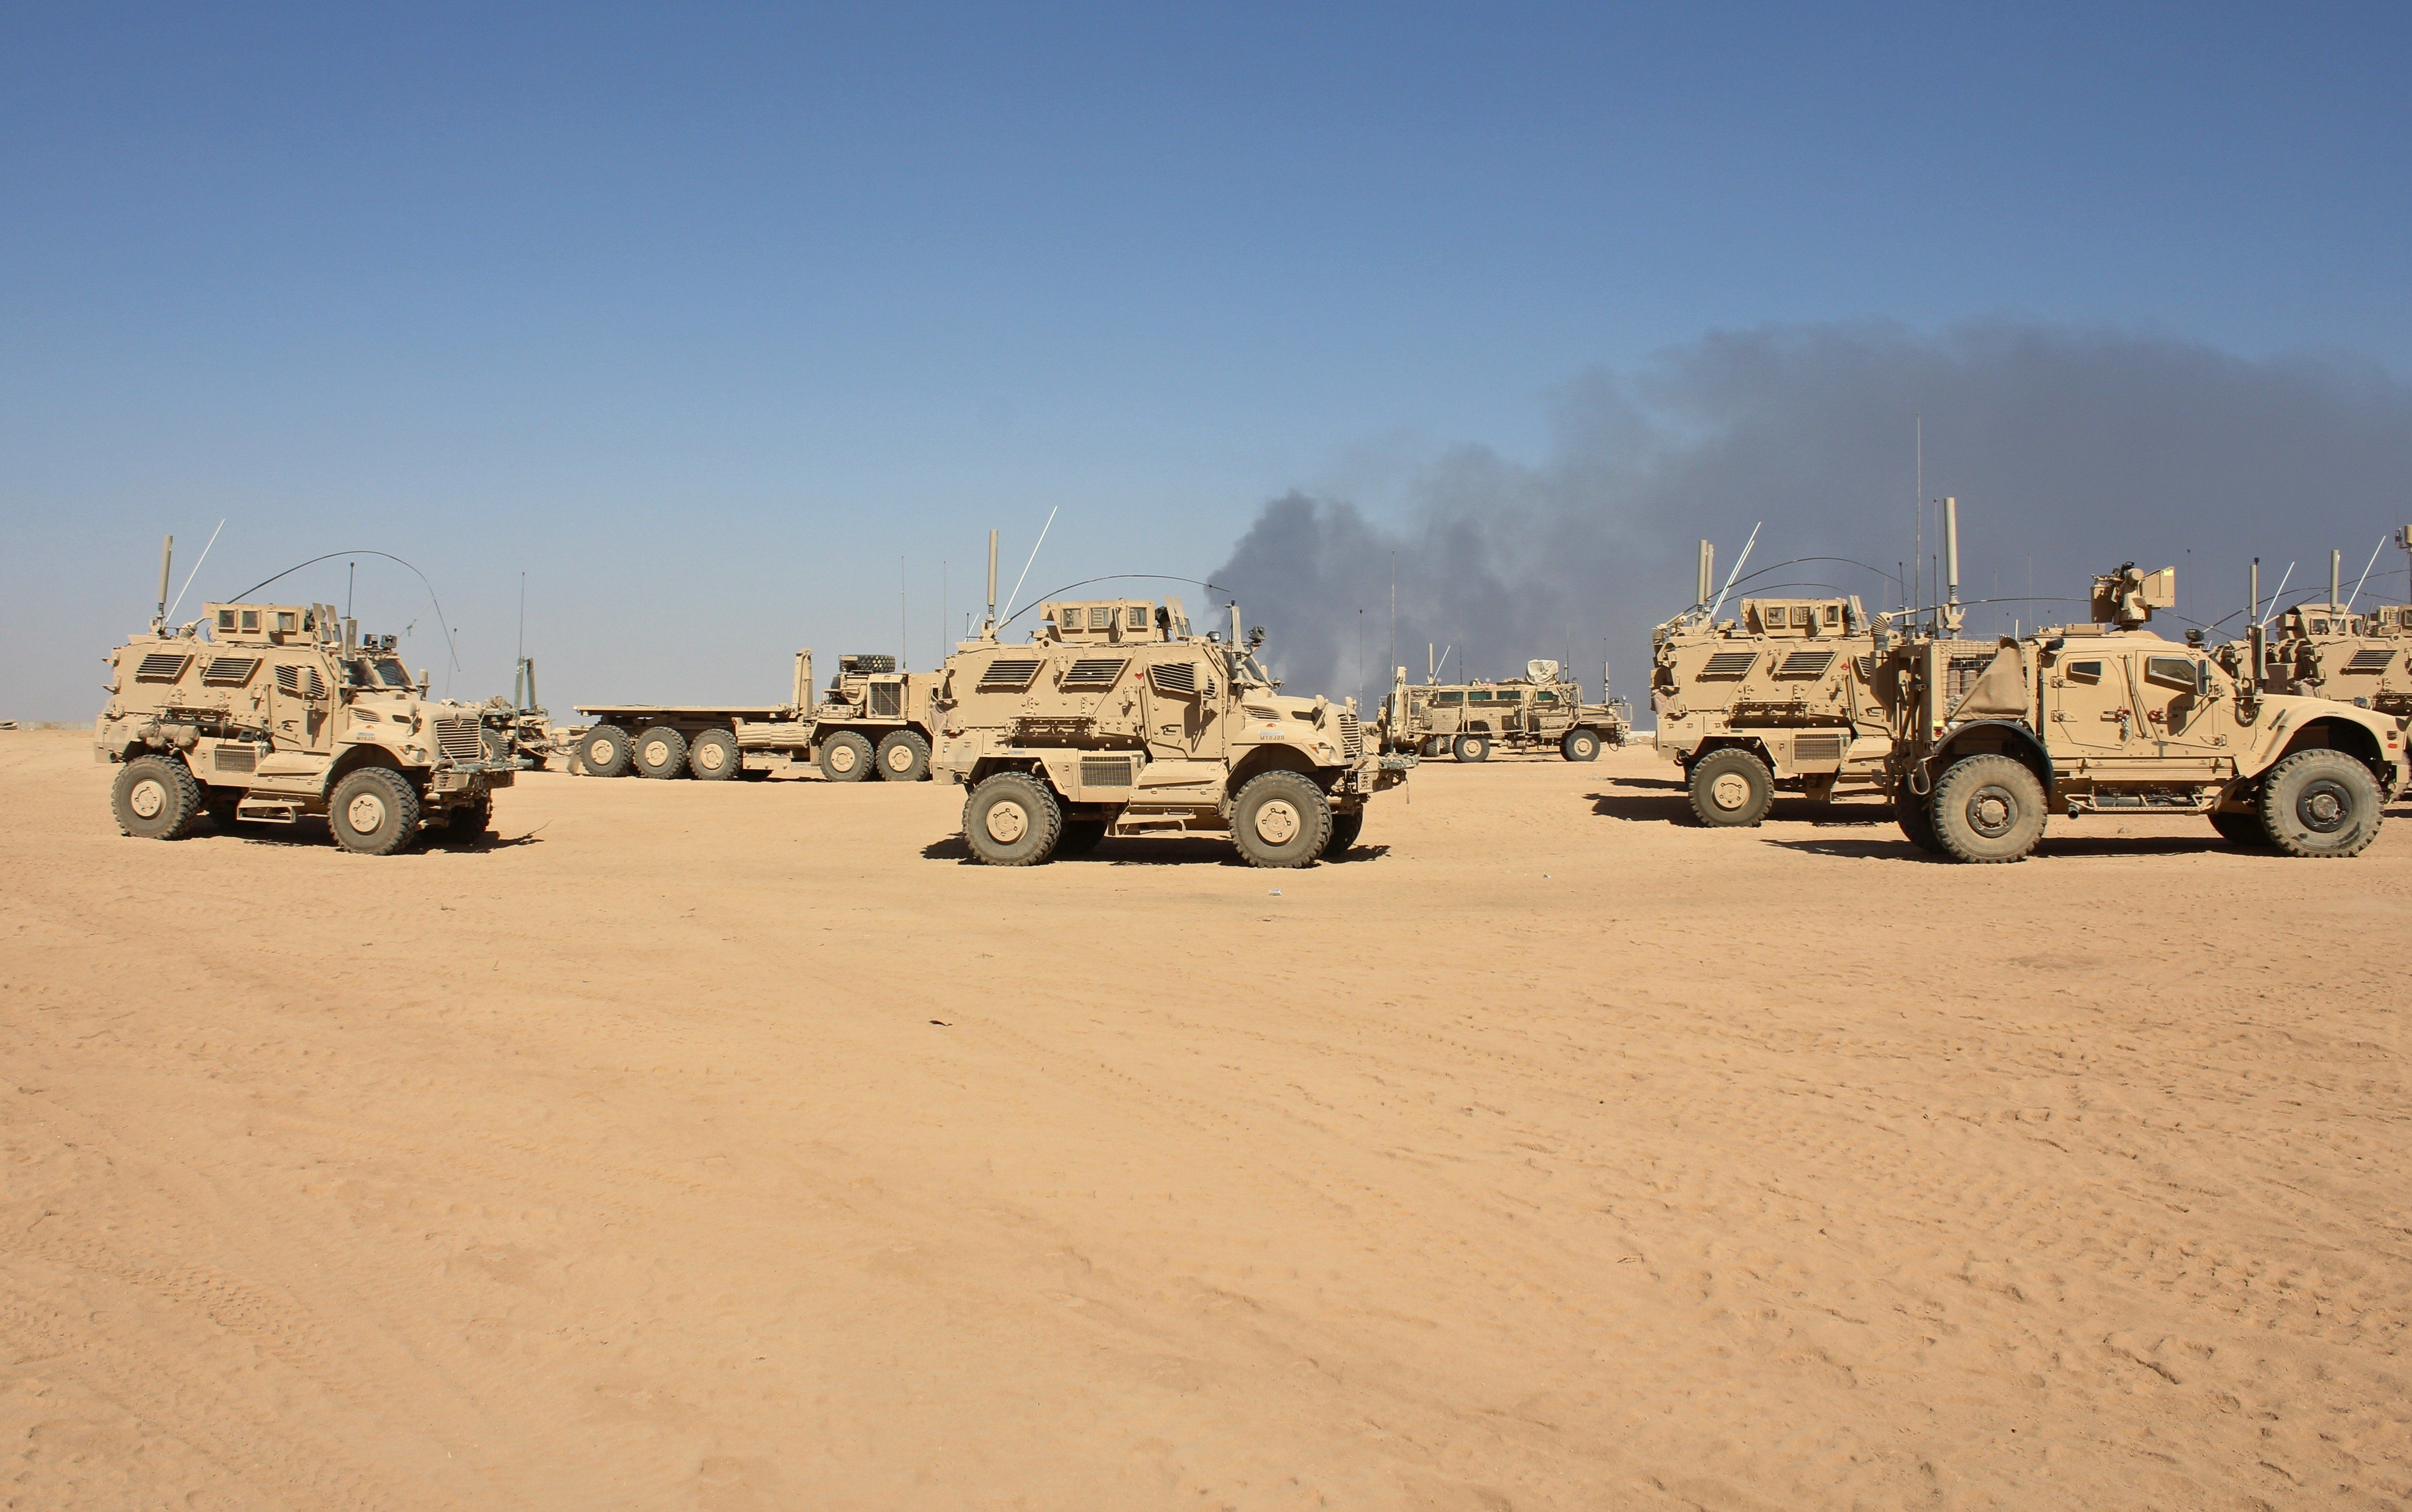 Mine-resistant vehicles based at Qayyarah Airfield West, which will be a key staging area for U.S. and allied